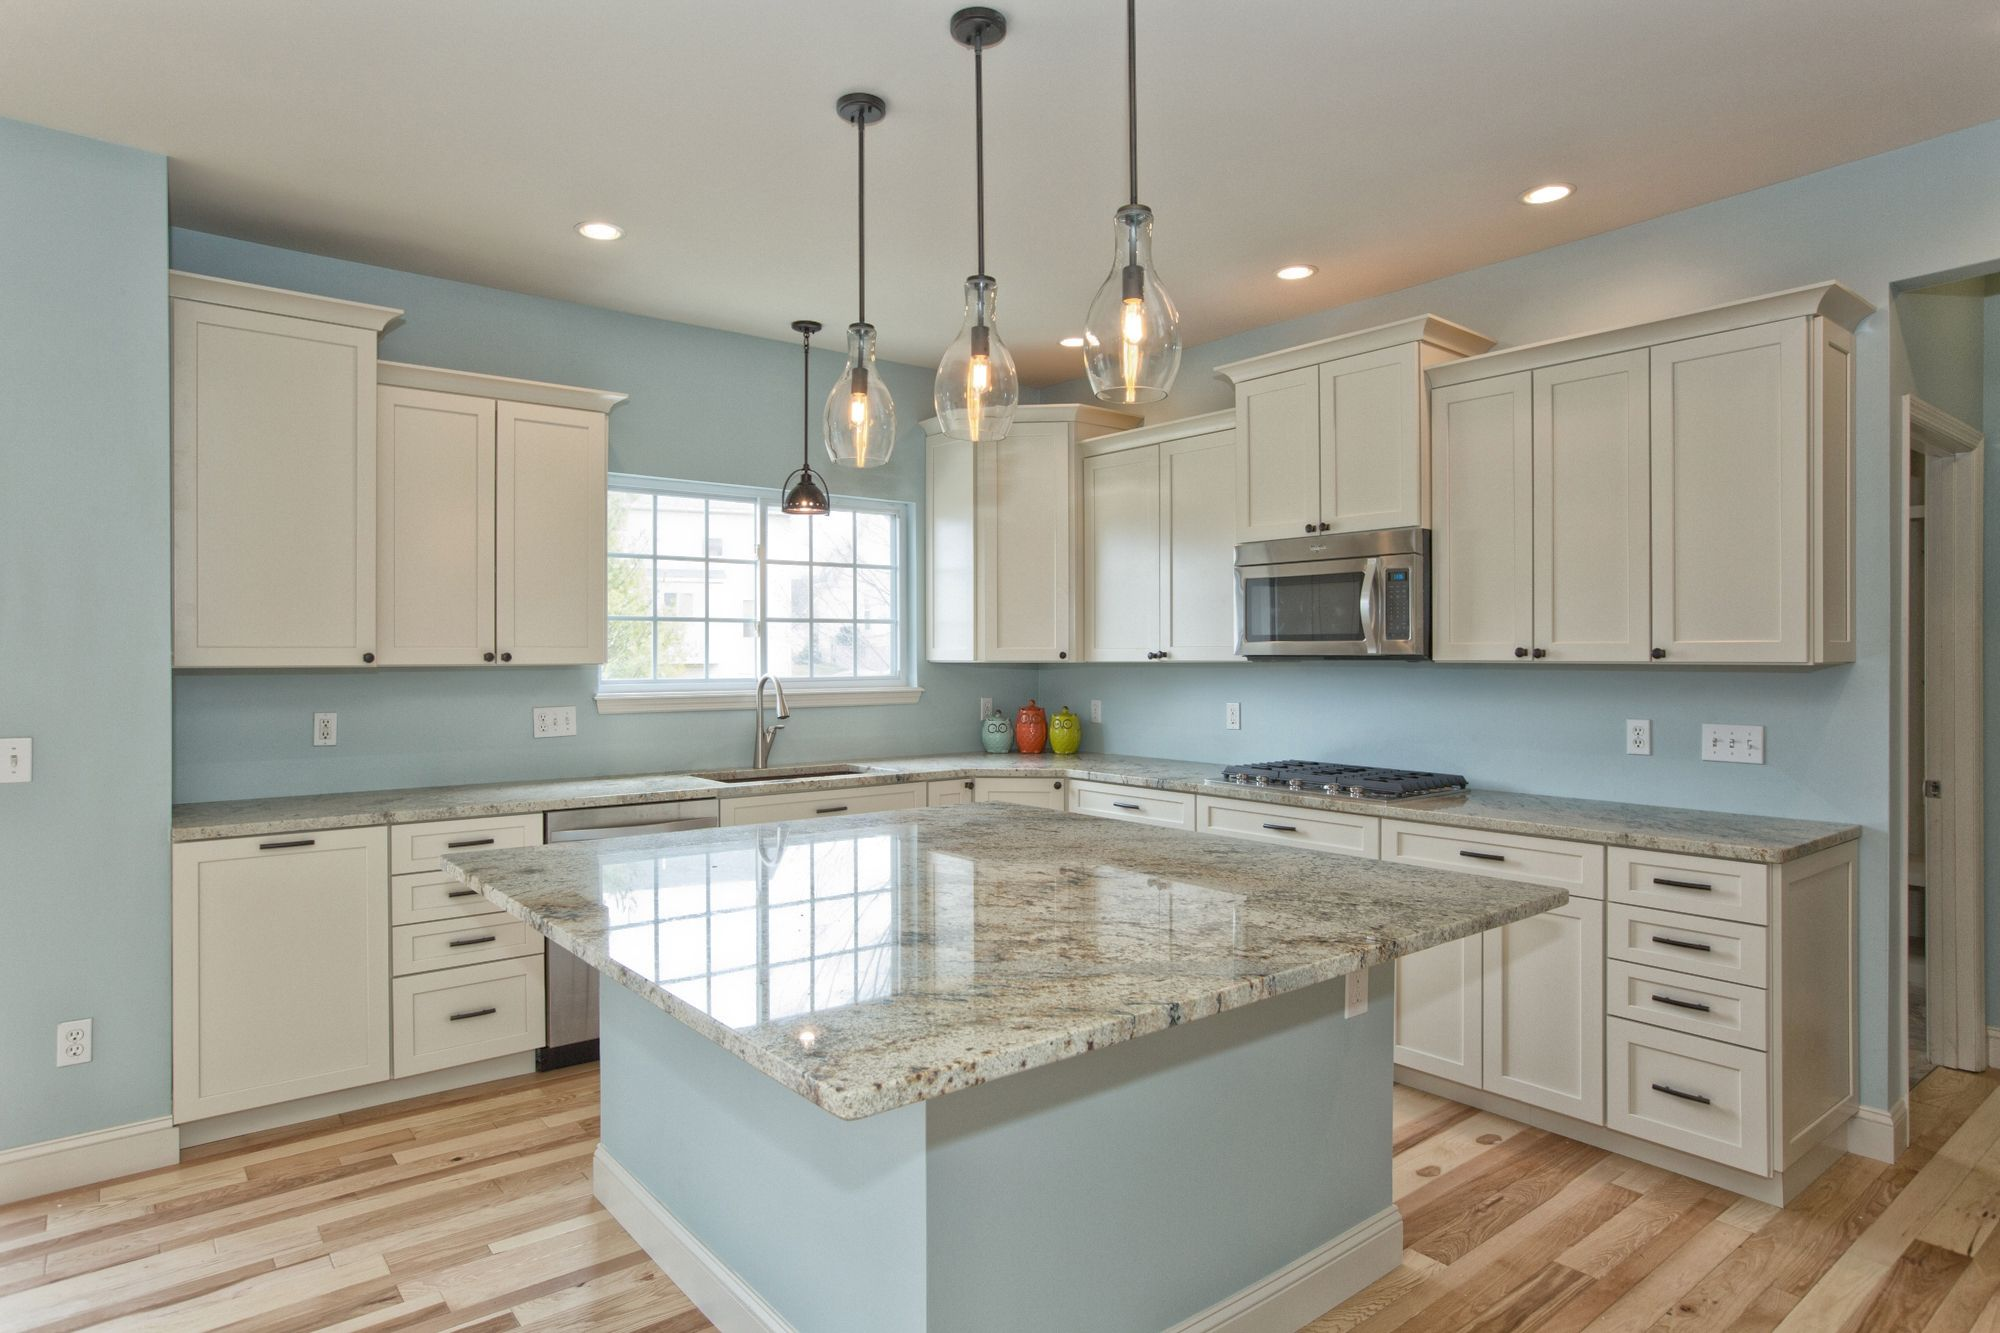 Off White Kitchen Cabinets Light Blue Walls In A Kitchen Light Blue Kitchens Blue Kitchen Walls Kitchen Design